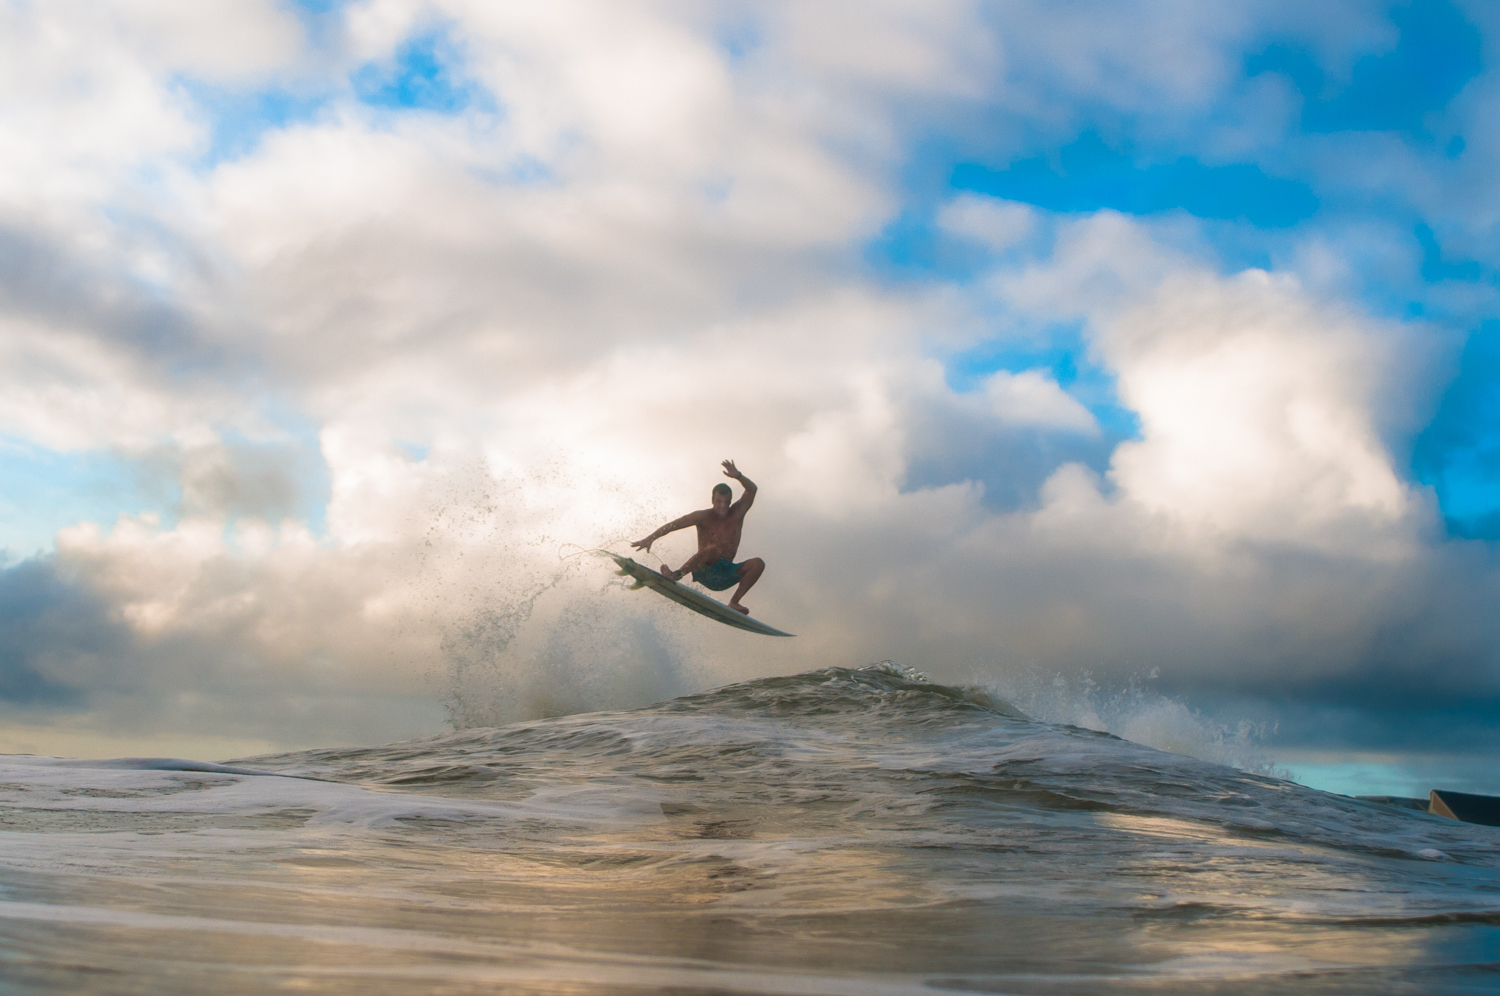 Gabe Kling in the clouds.